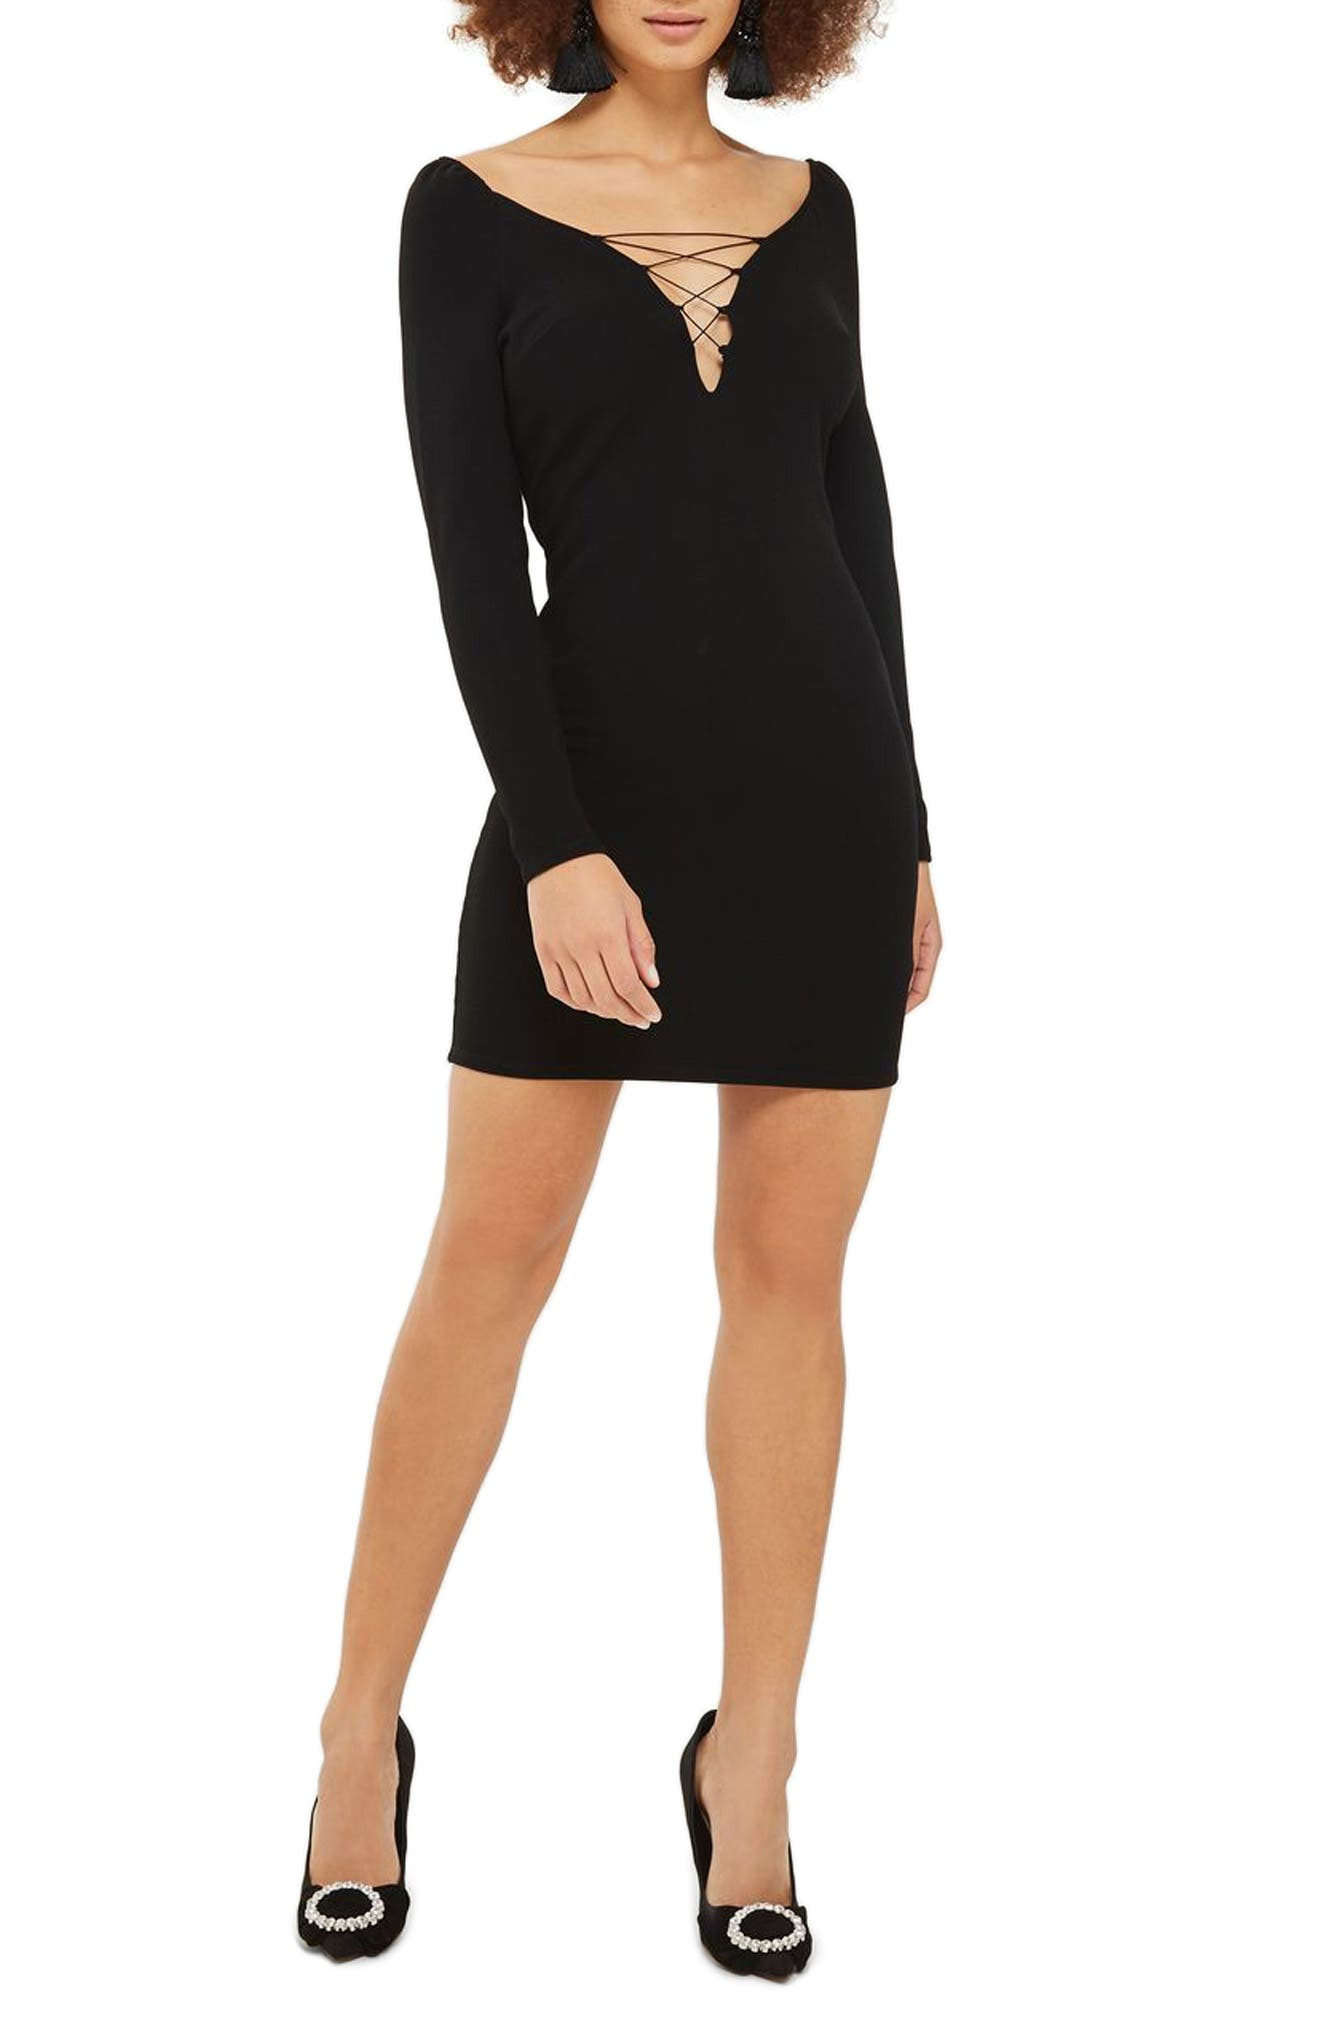 Alternate Image 1 Selected - Topshop Lace-Up Boatneck Body-Con Dress